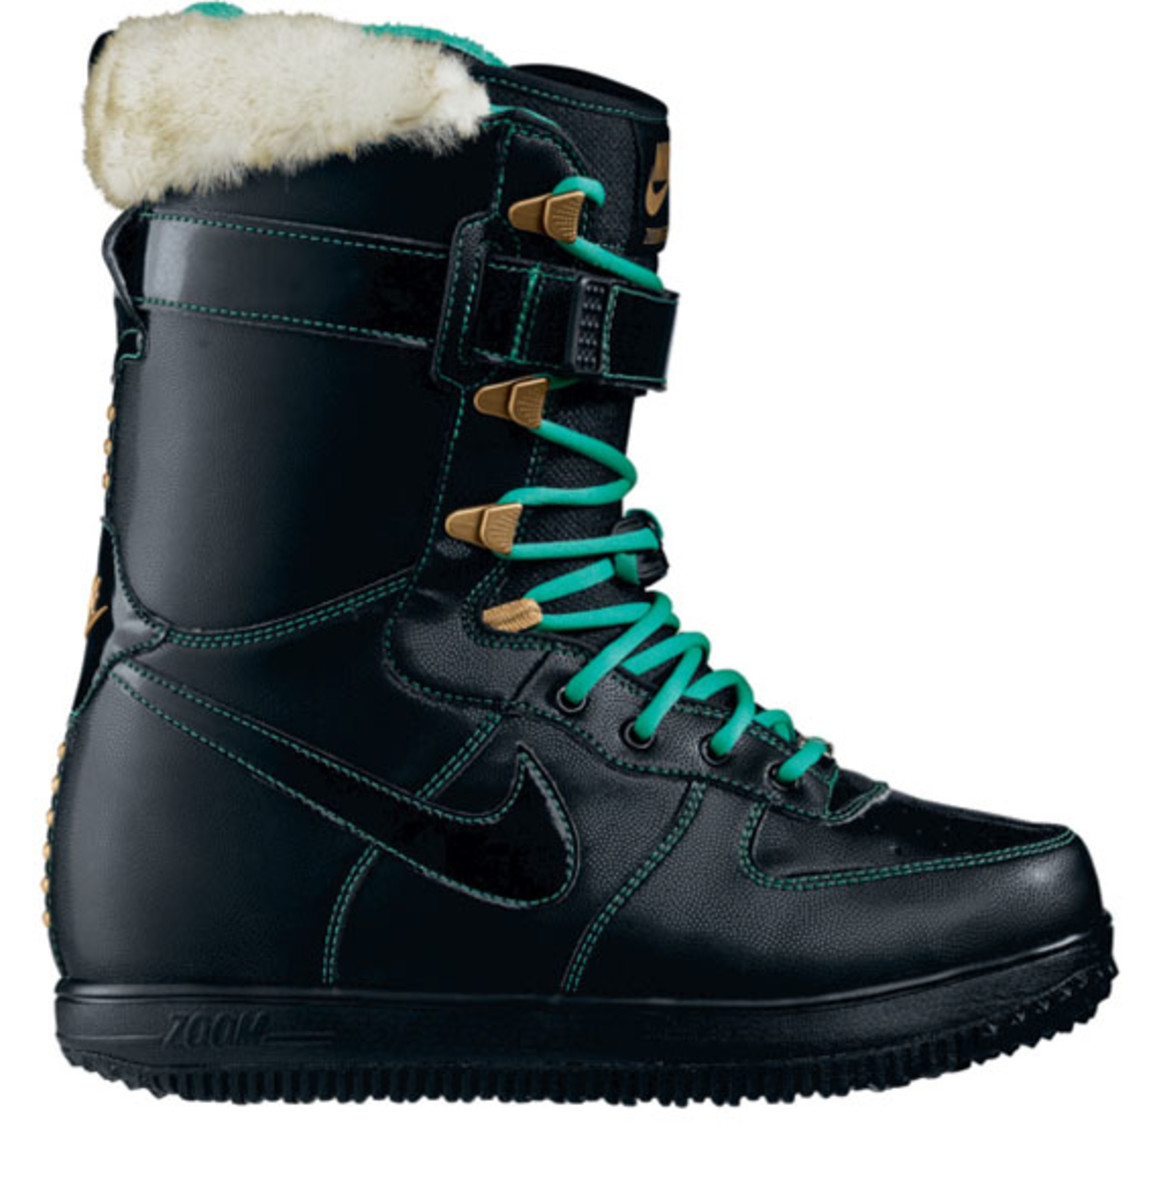 nike-snowboarding-boots-10